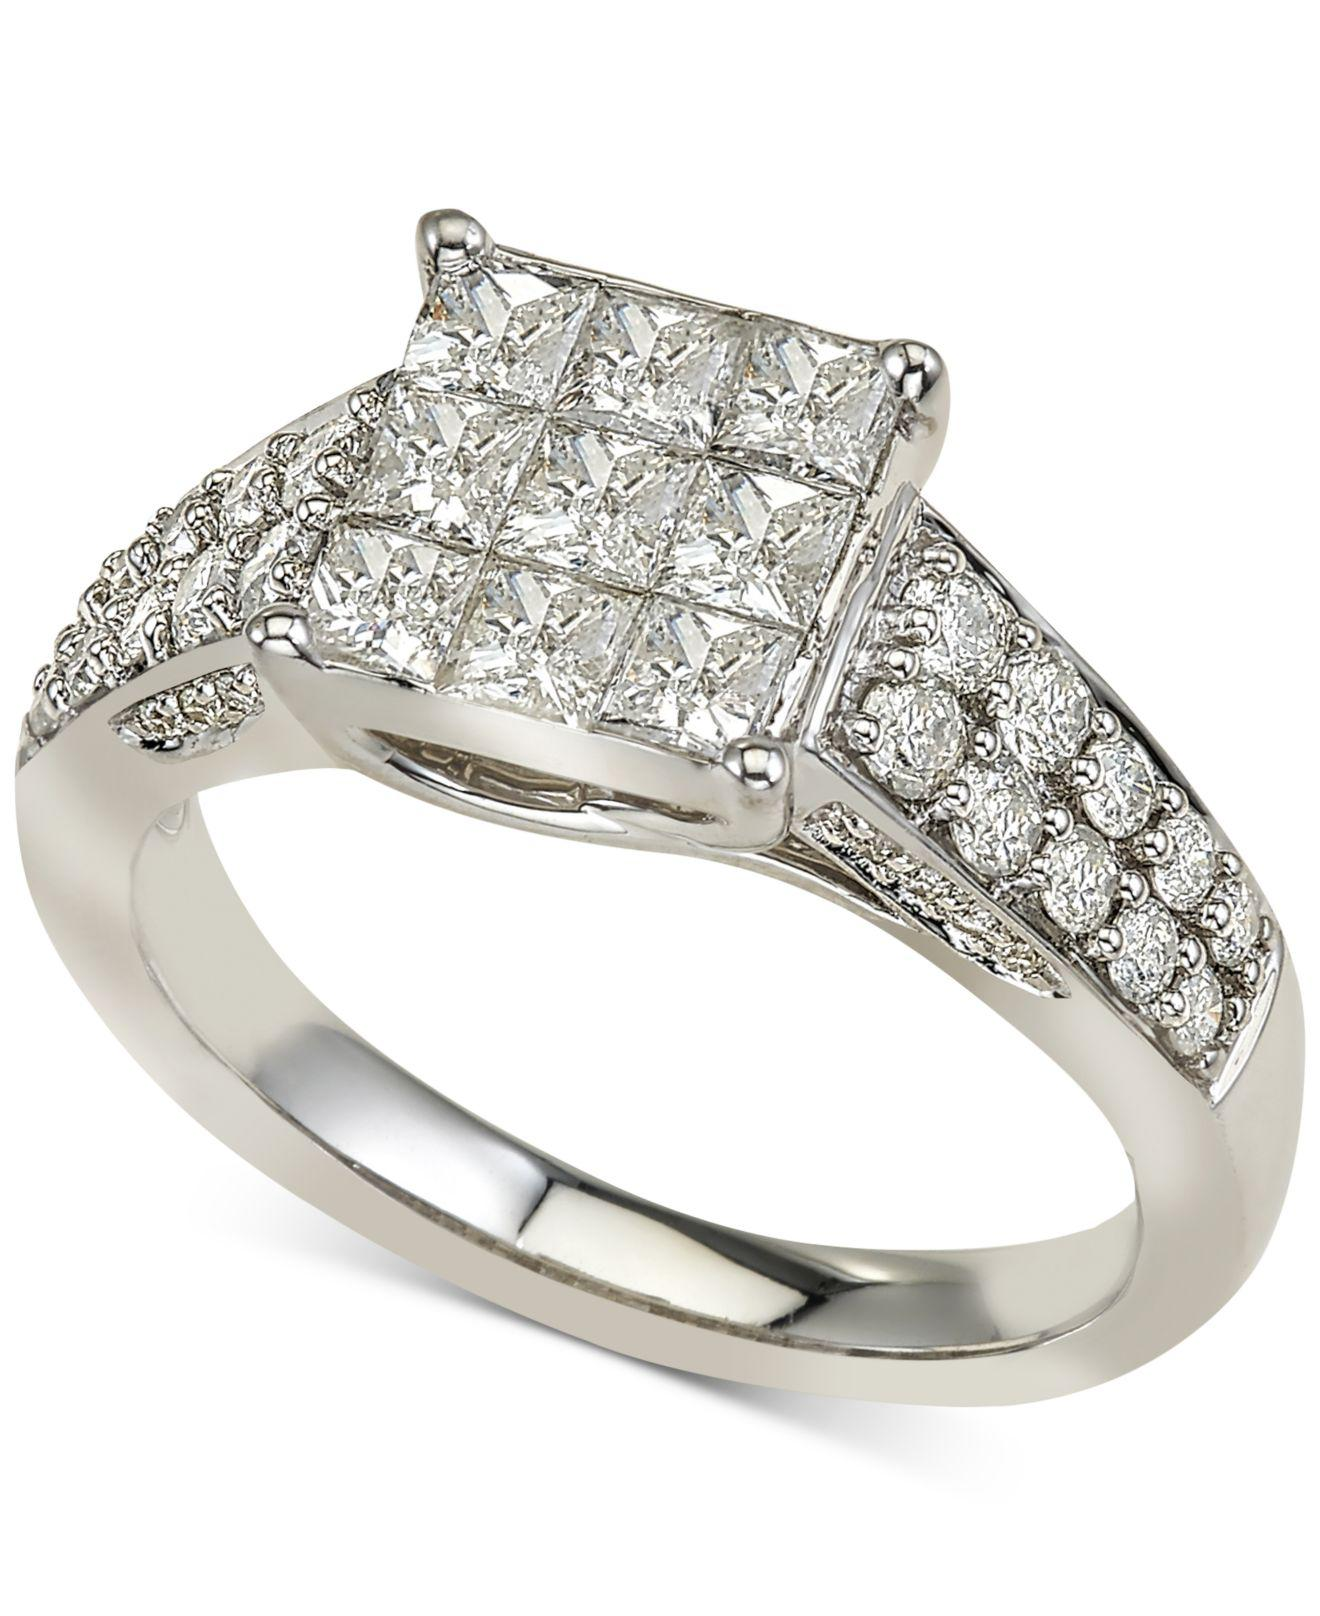 diamond whiteview square login earn madrid or pear accented an engagement account create cut rings ring to points